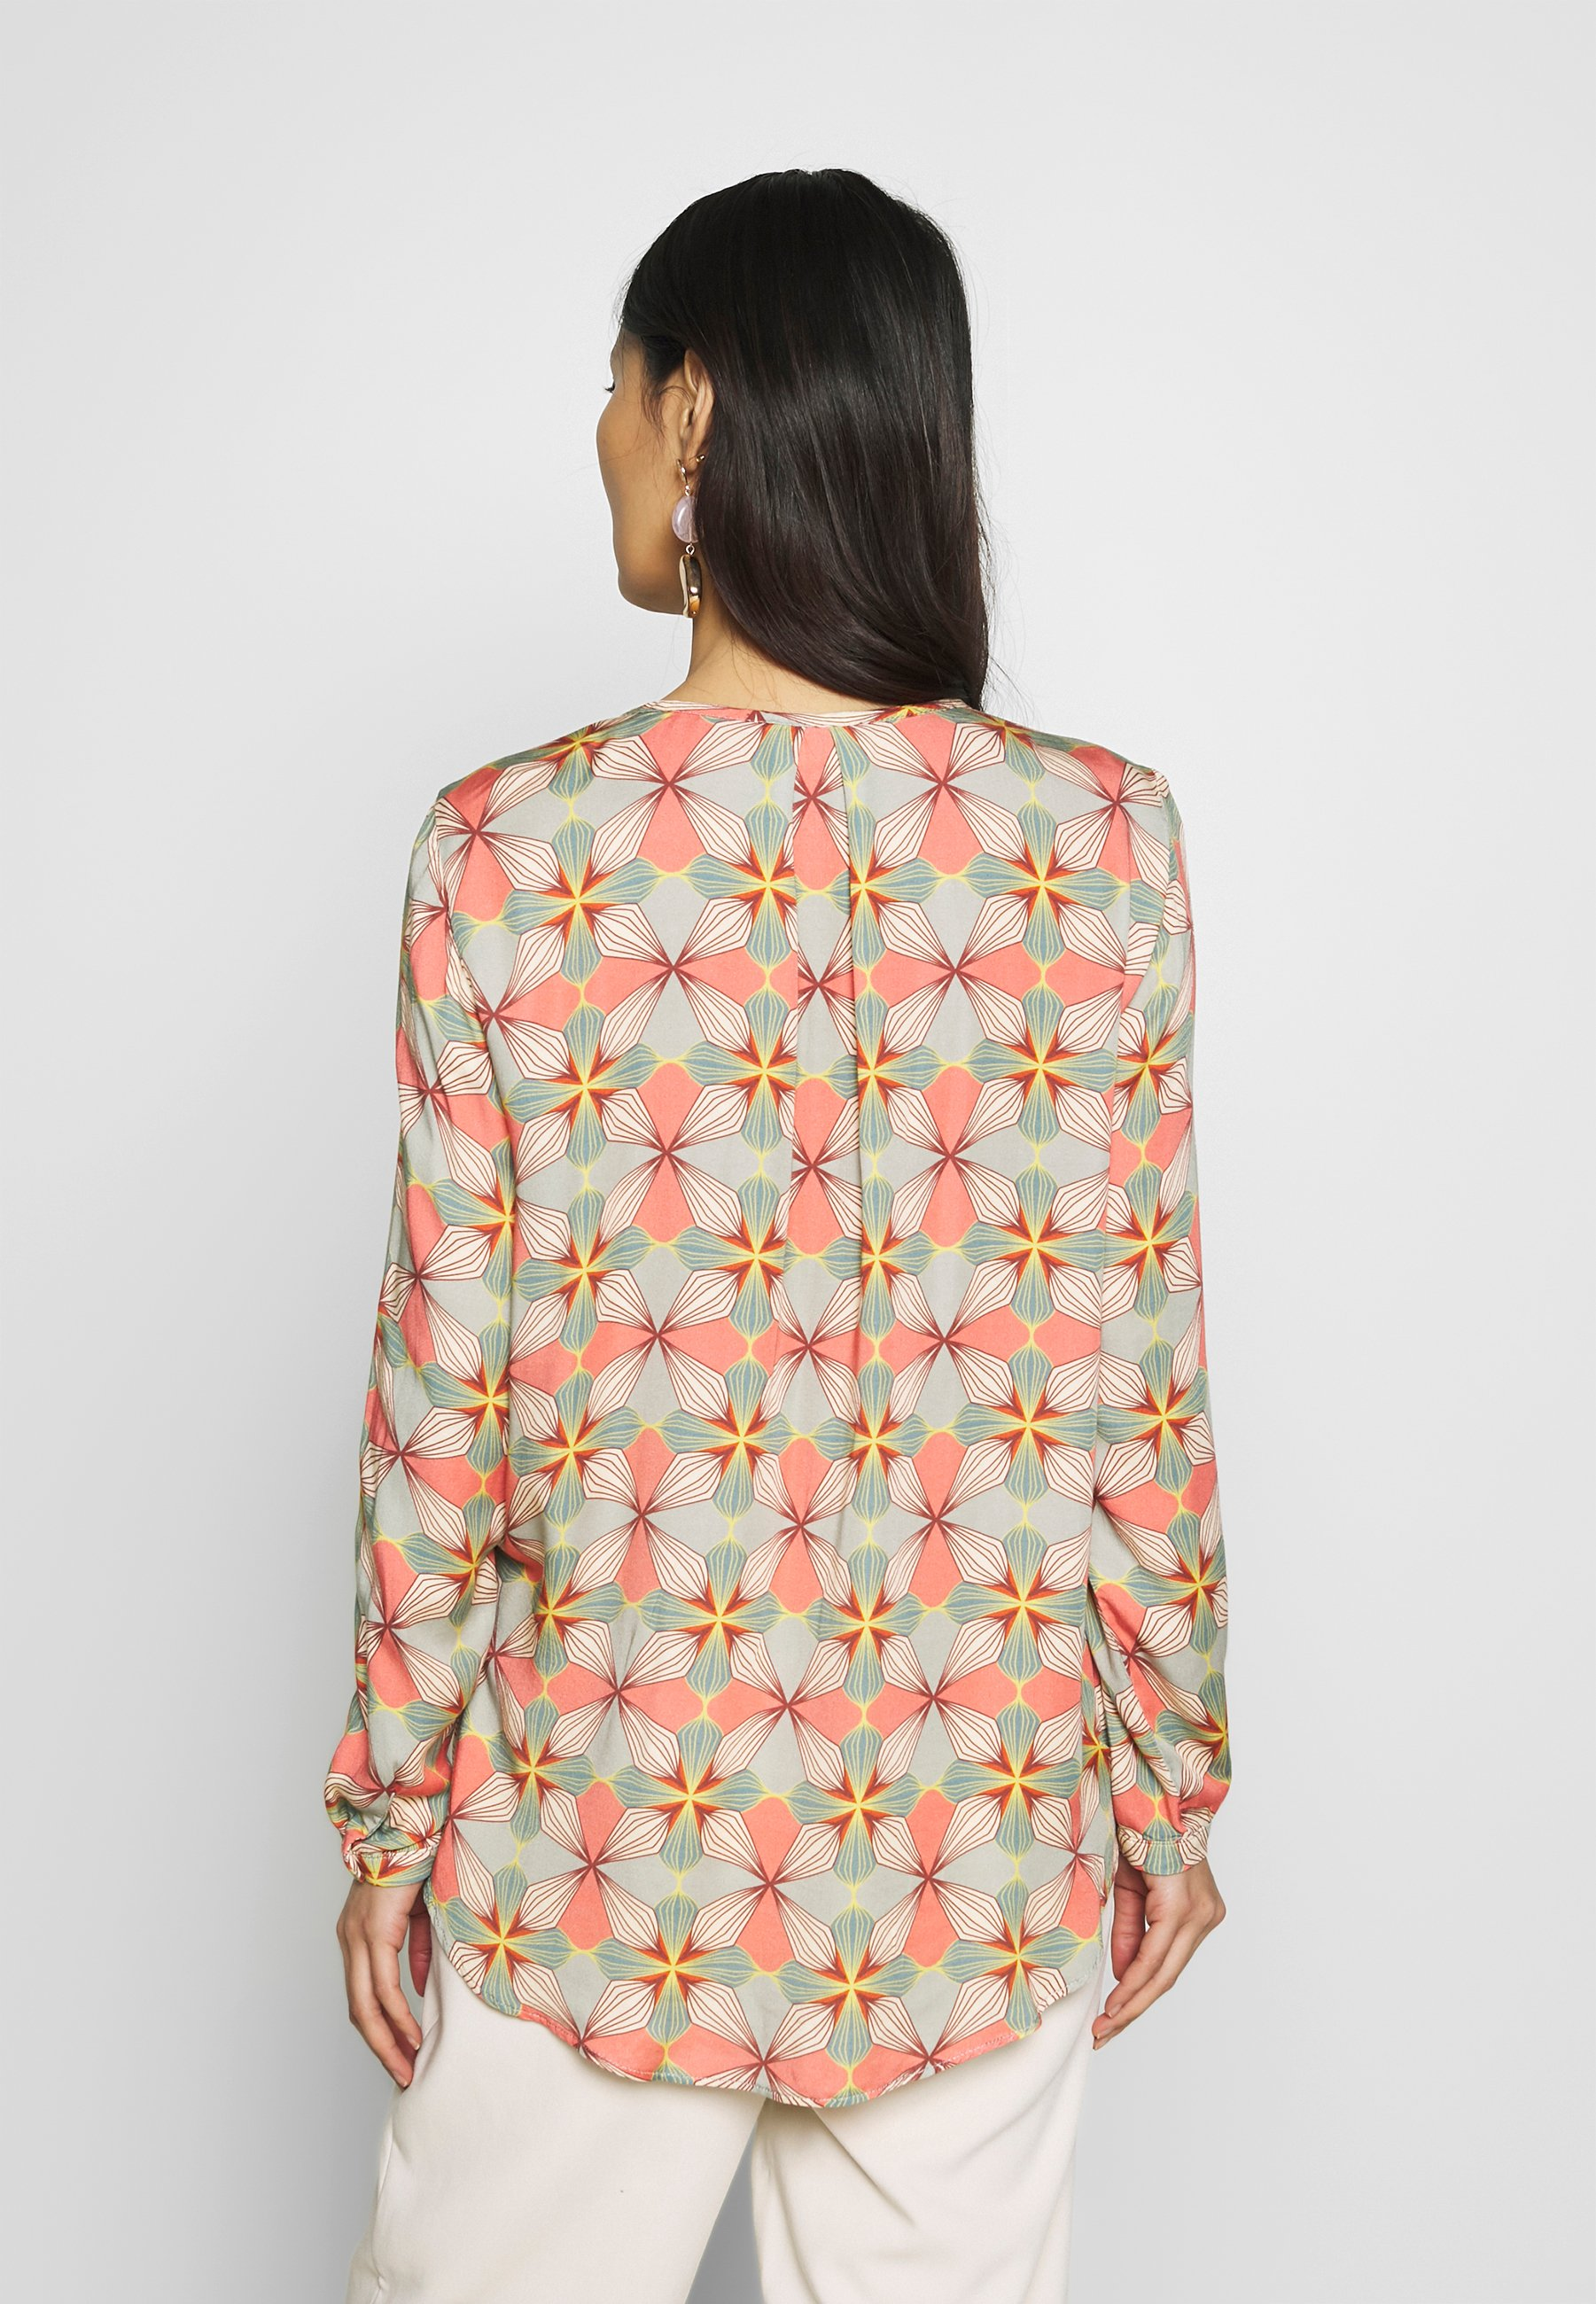 Cartoon Blouse - Taupe/apricot